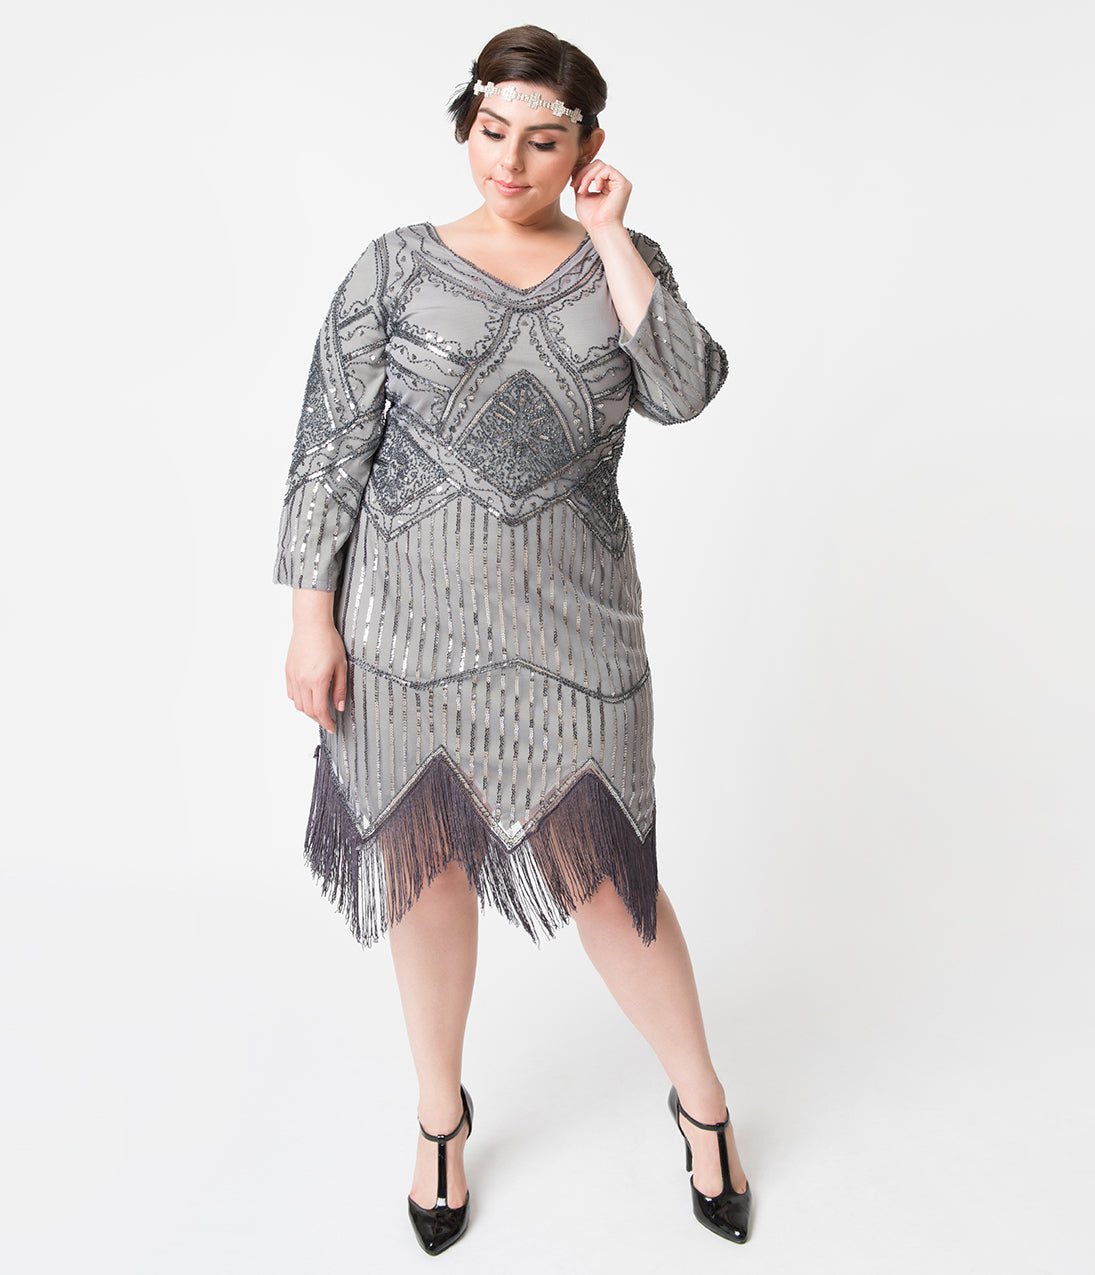 1920s Evening Dresses & Formal Gowns Unique Vintage Plus Size 1920S Dark Grey Beaded Sequin Sleeved Noemie Fringe Flapper Dress $36.00 AT vintagedancer.com